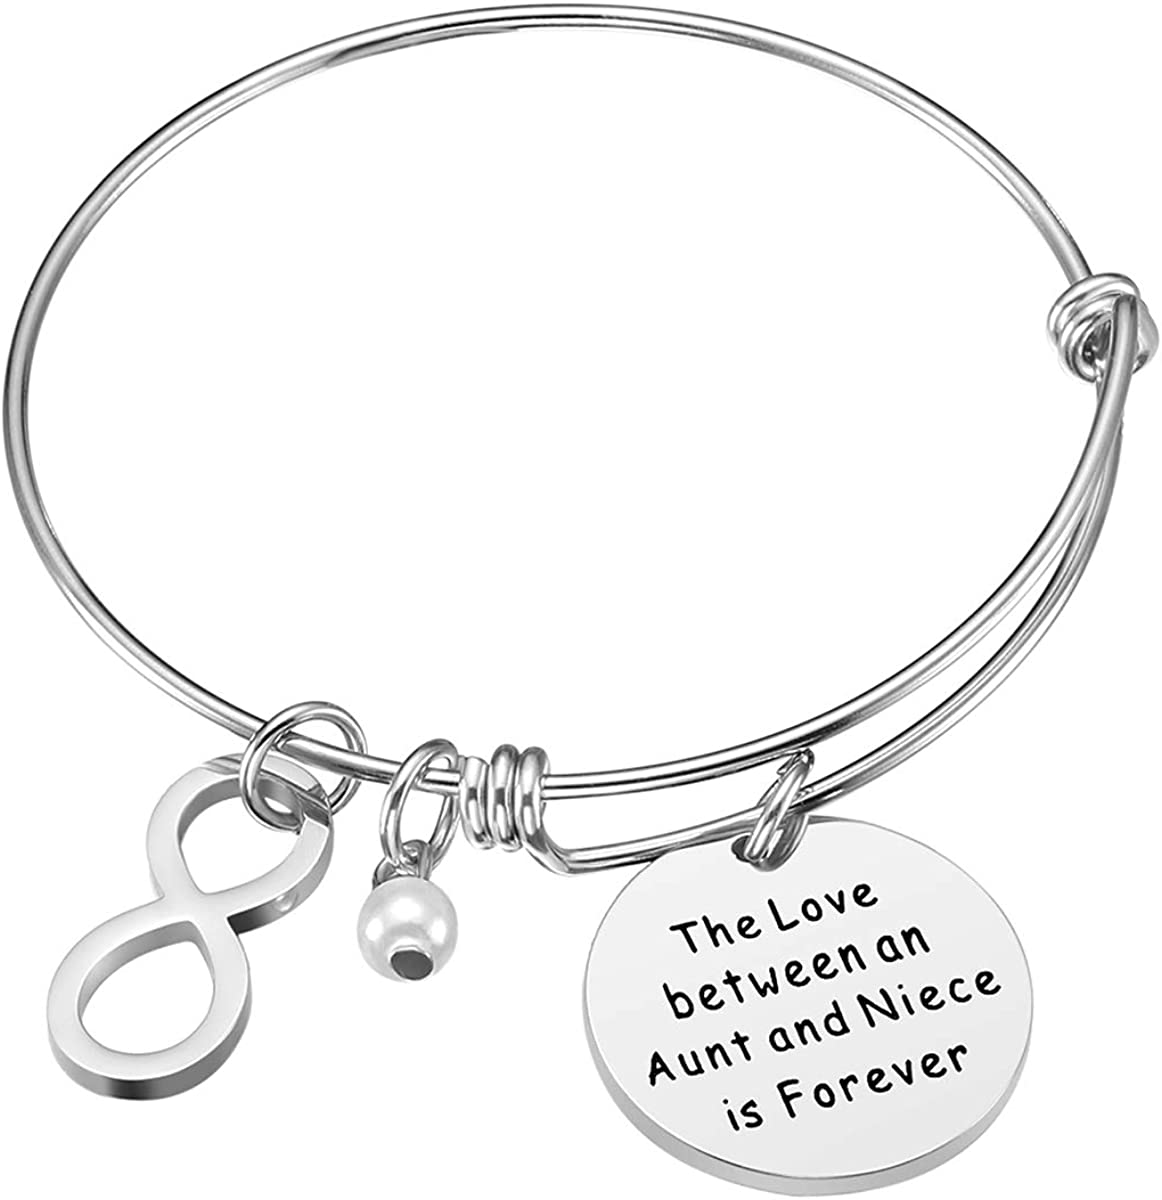 iJuqi Aunt Gift From Niece Aunt Niece Bracelet Aunt Birthday Gifts The Love Between An Aunt and Niece Is Forever Stainless Steel Aunt Jewelry Gift